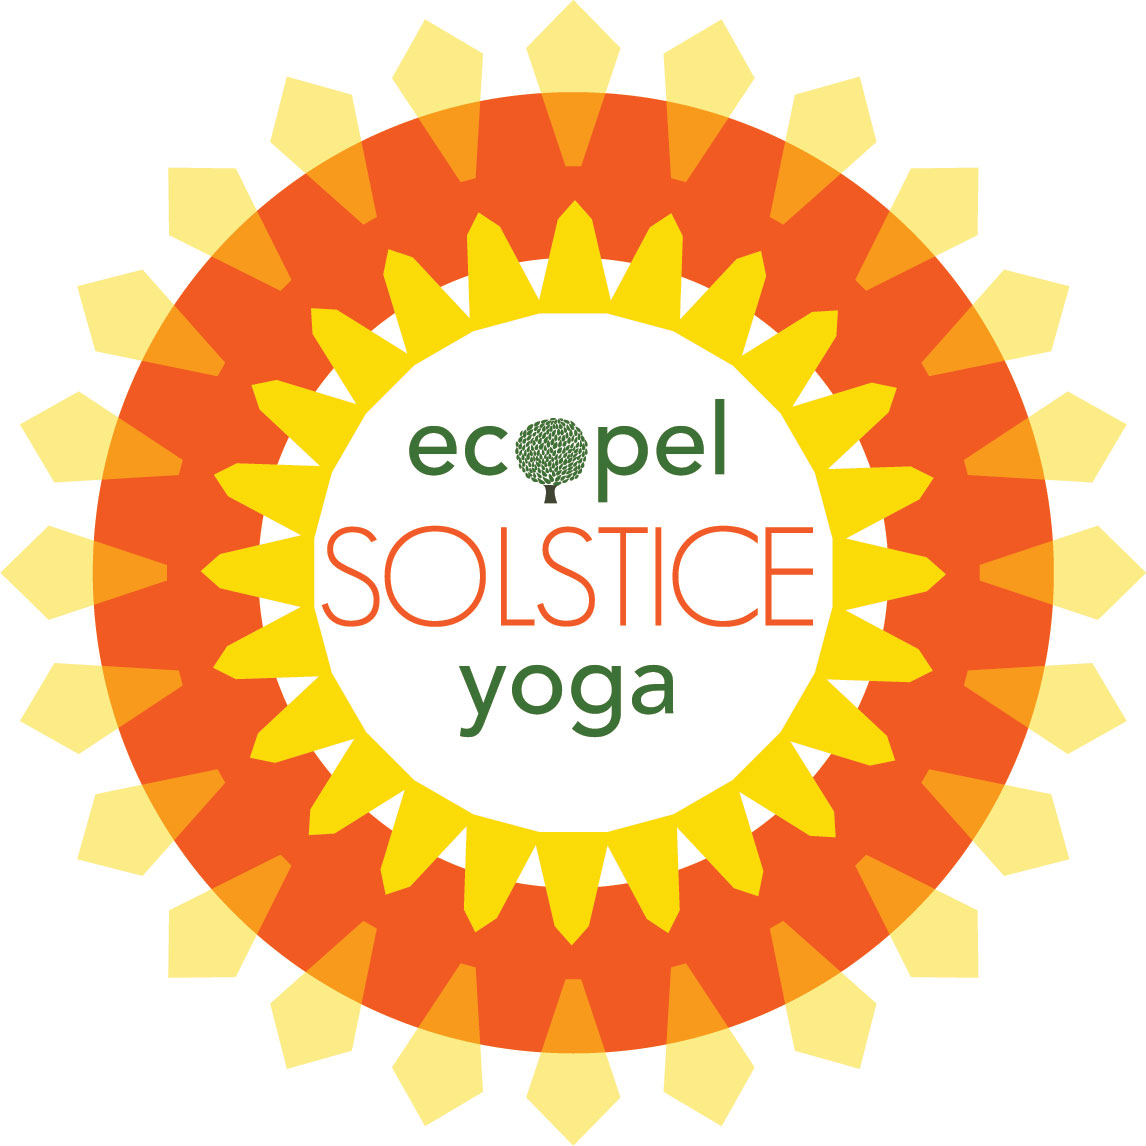 Ecopel Summer Solstice Yoga 2018 Ecopel